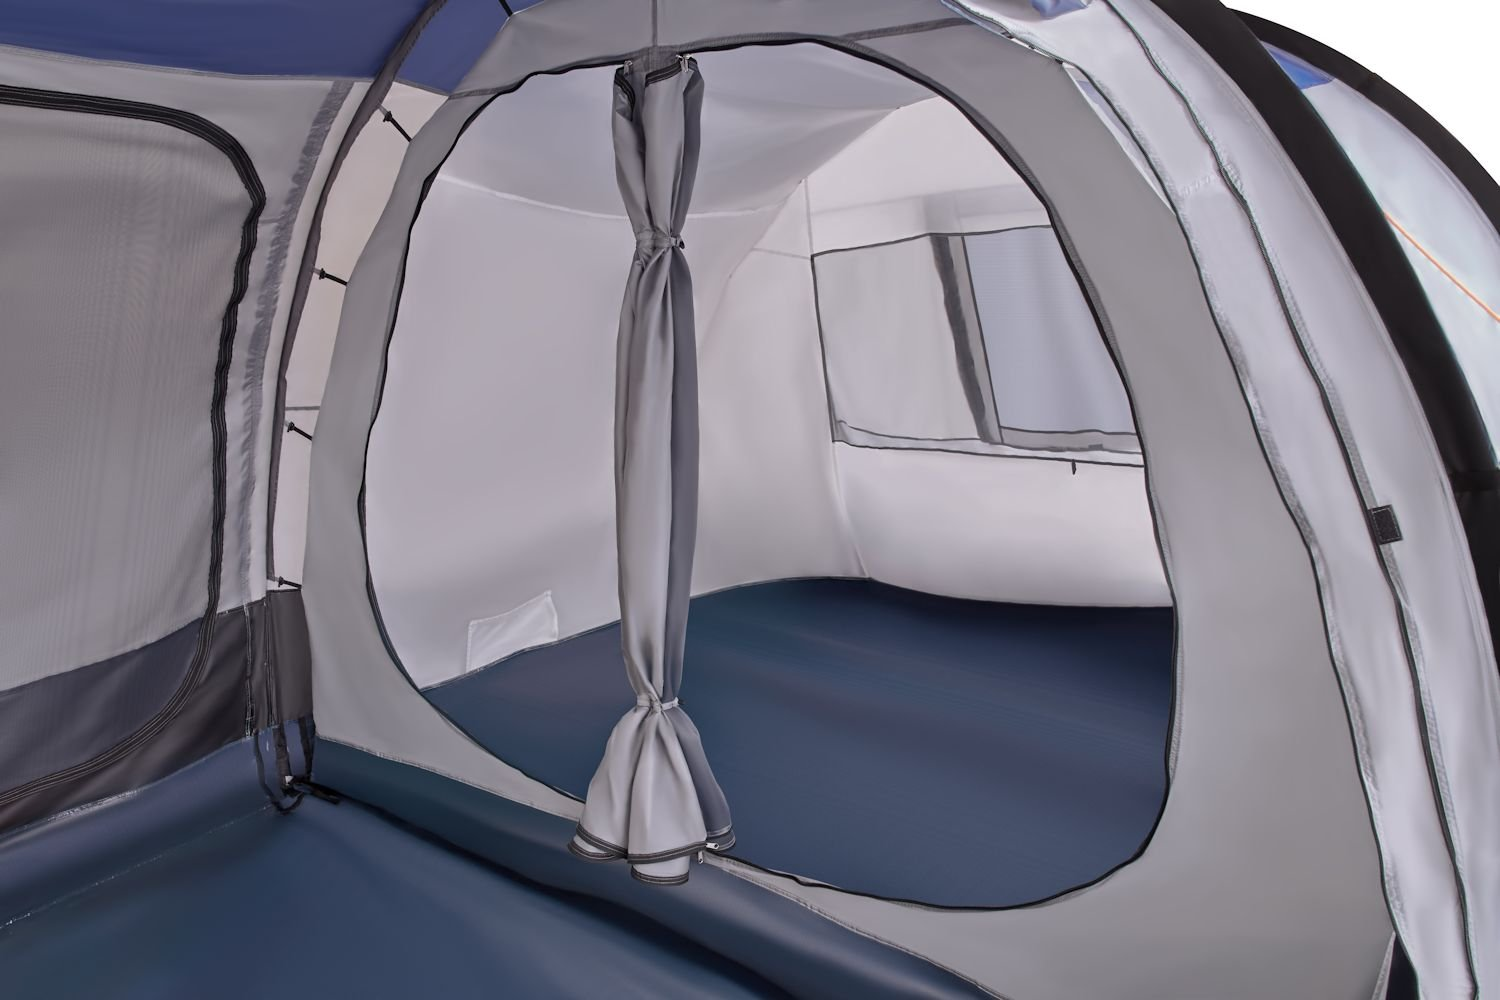 CampFeuer - Tunnel Tent, spacious Camping Tent, 510x360x210 cm, blue/grey - Version 2 6